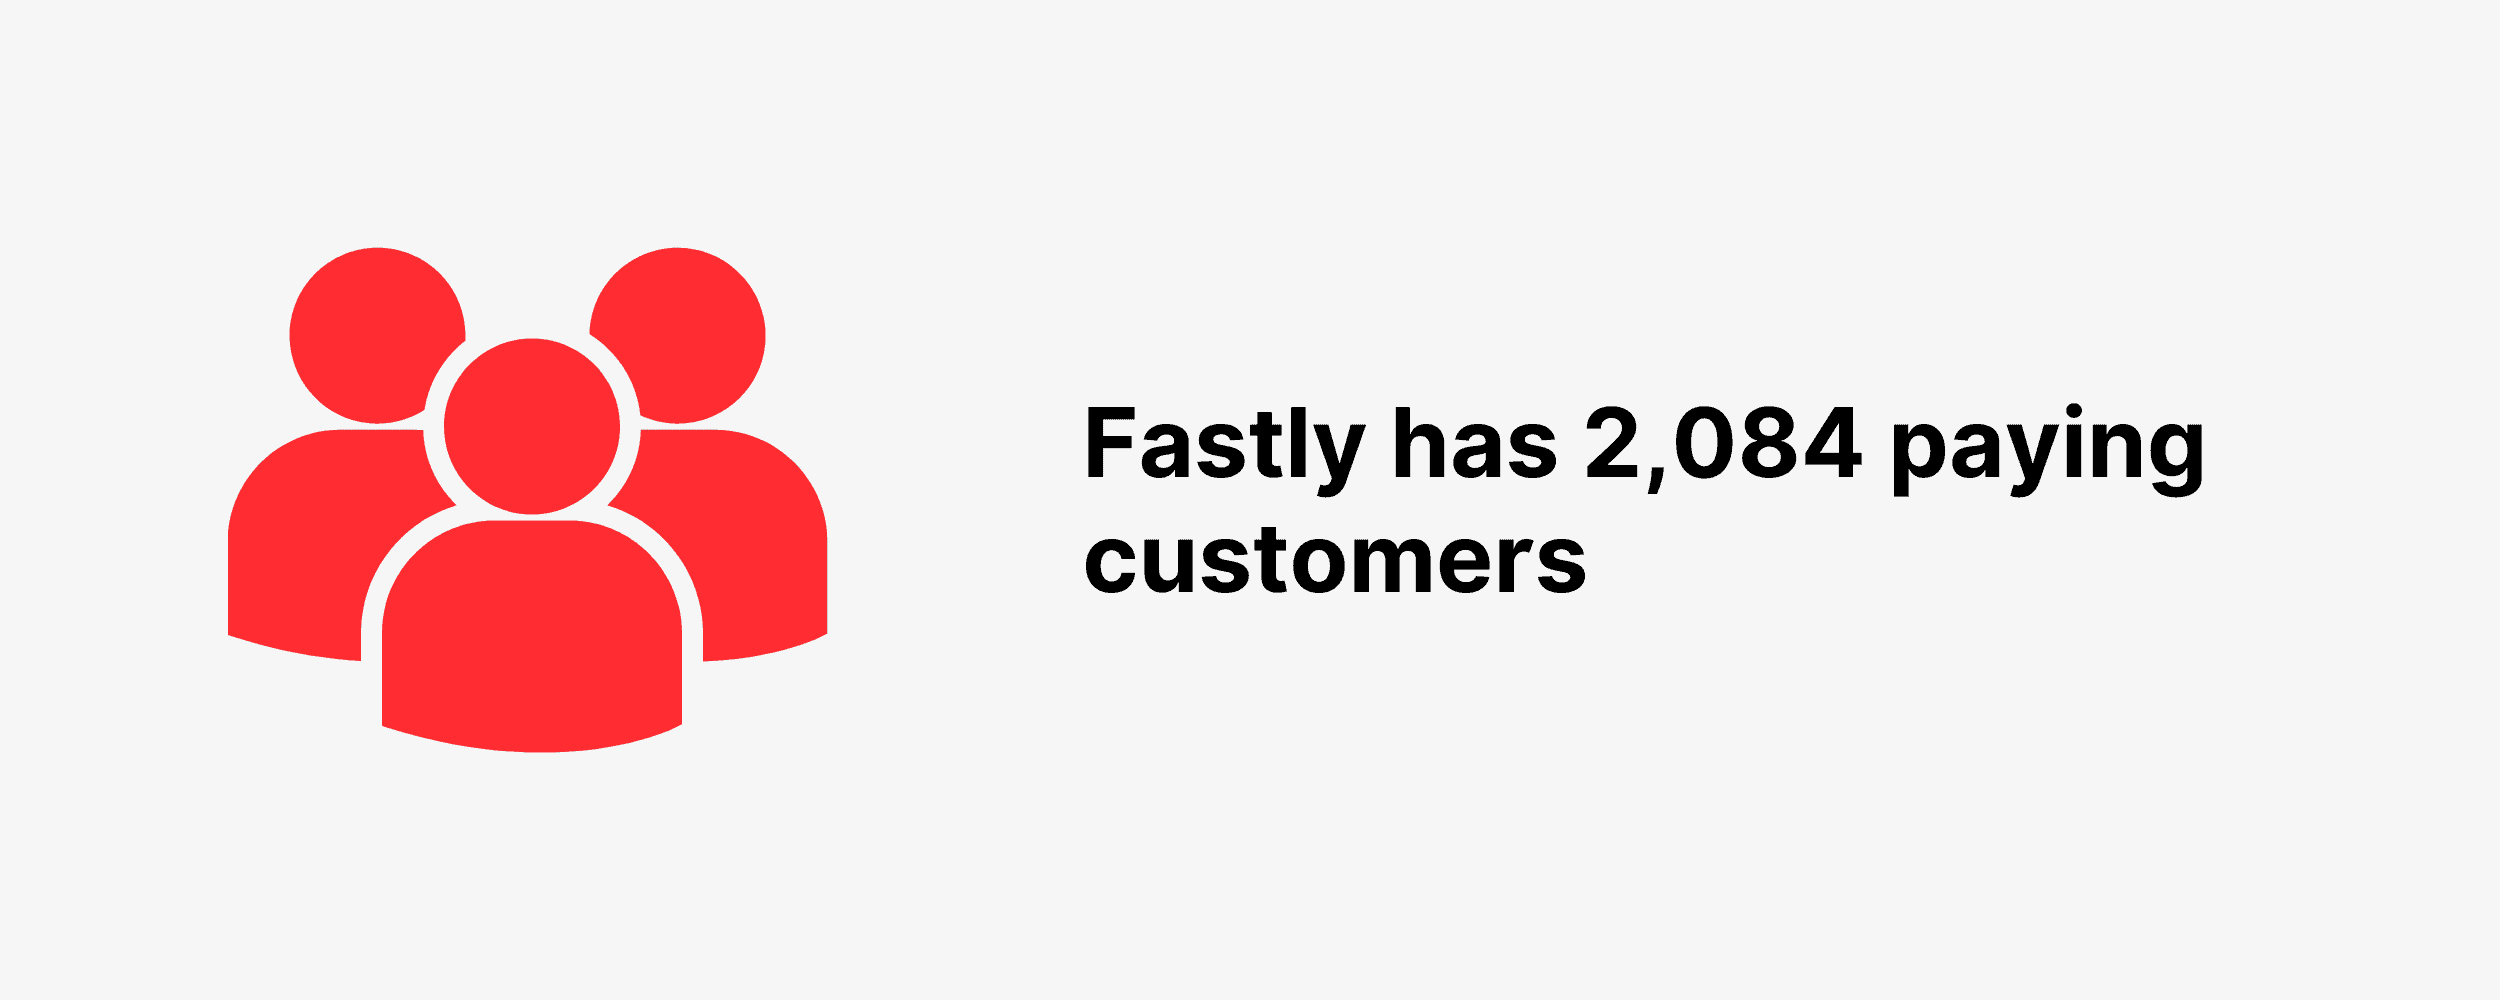 Fastly has 2,084 paying customers